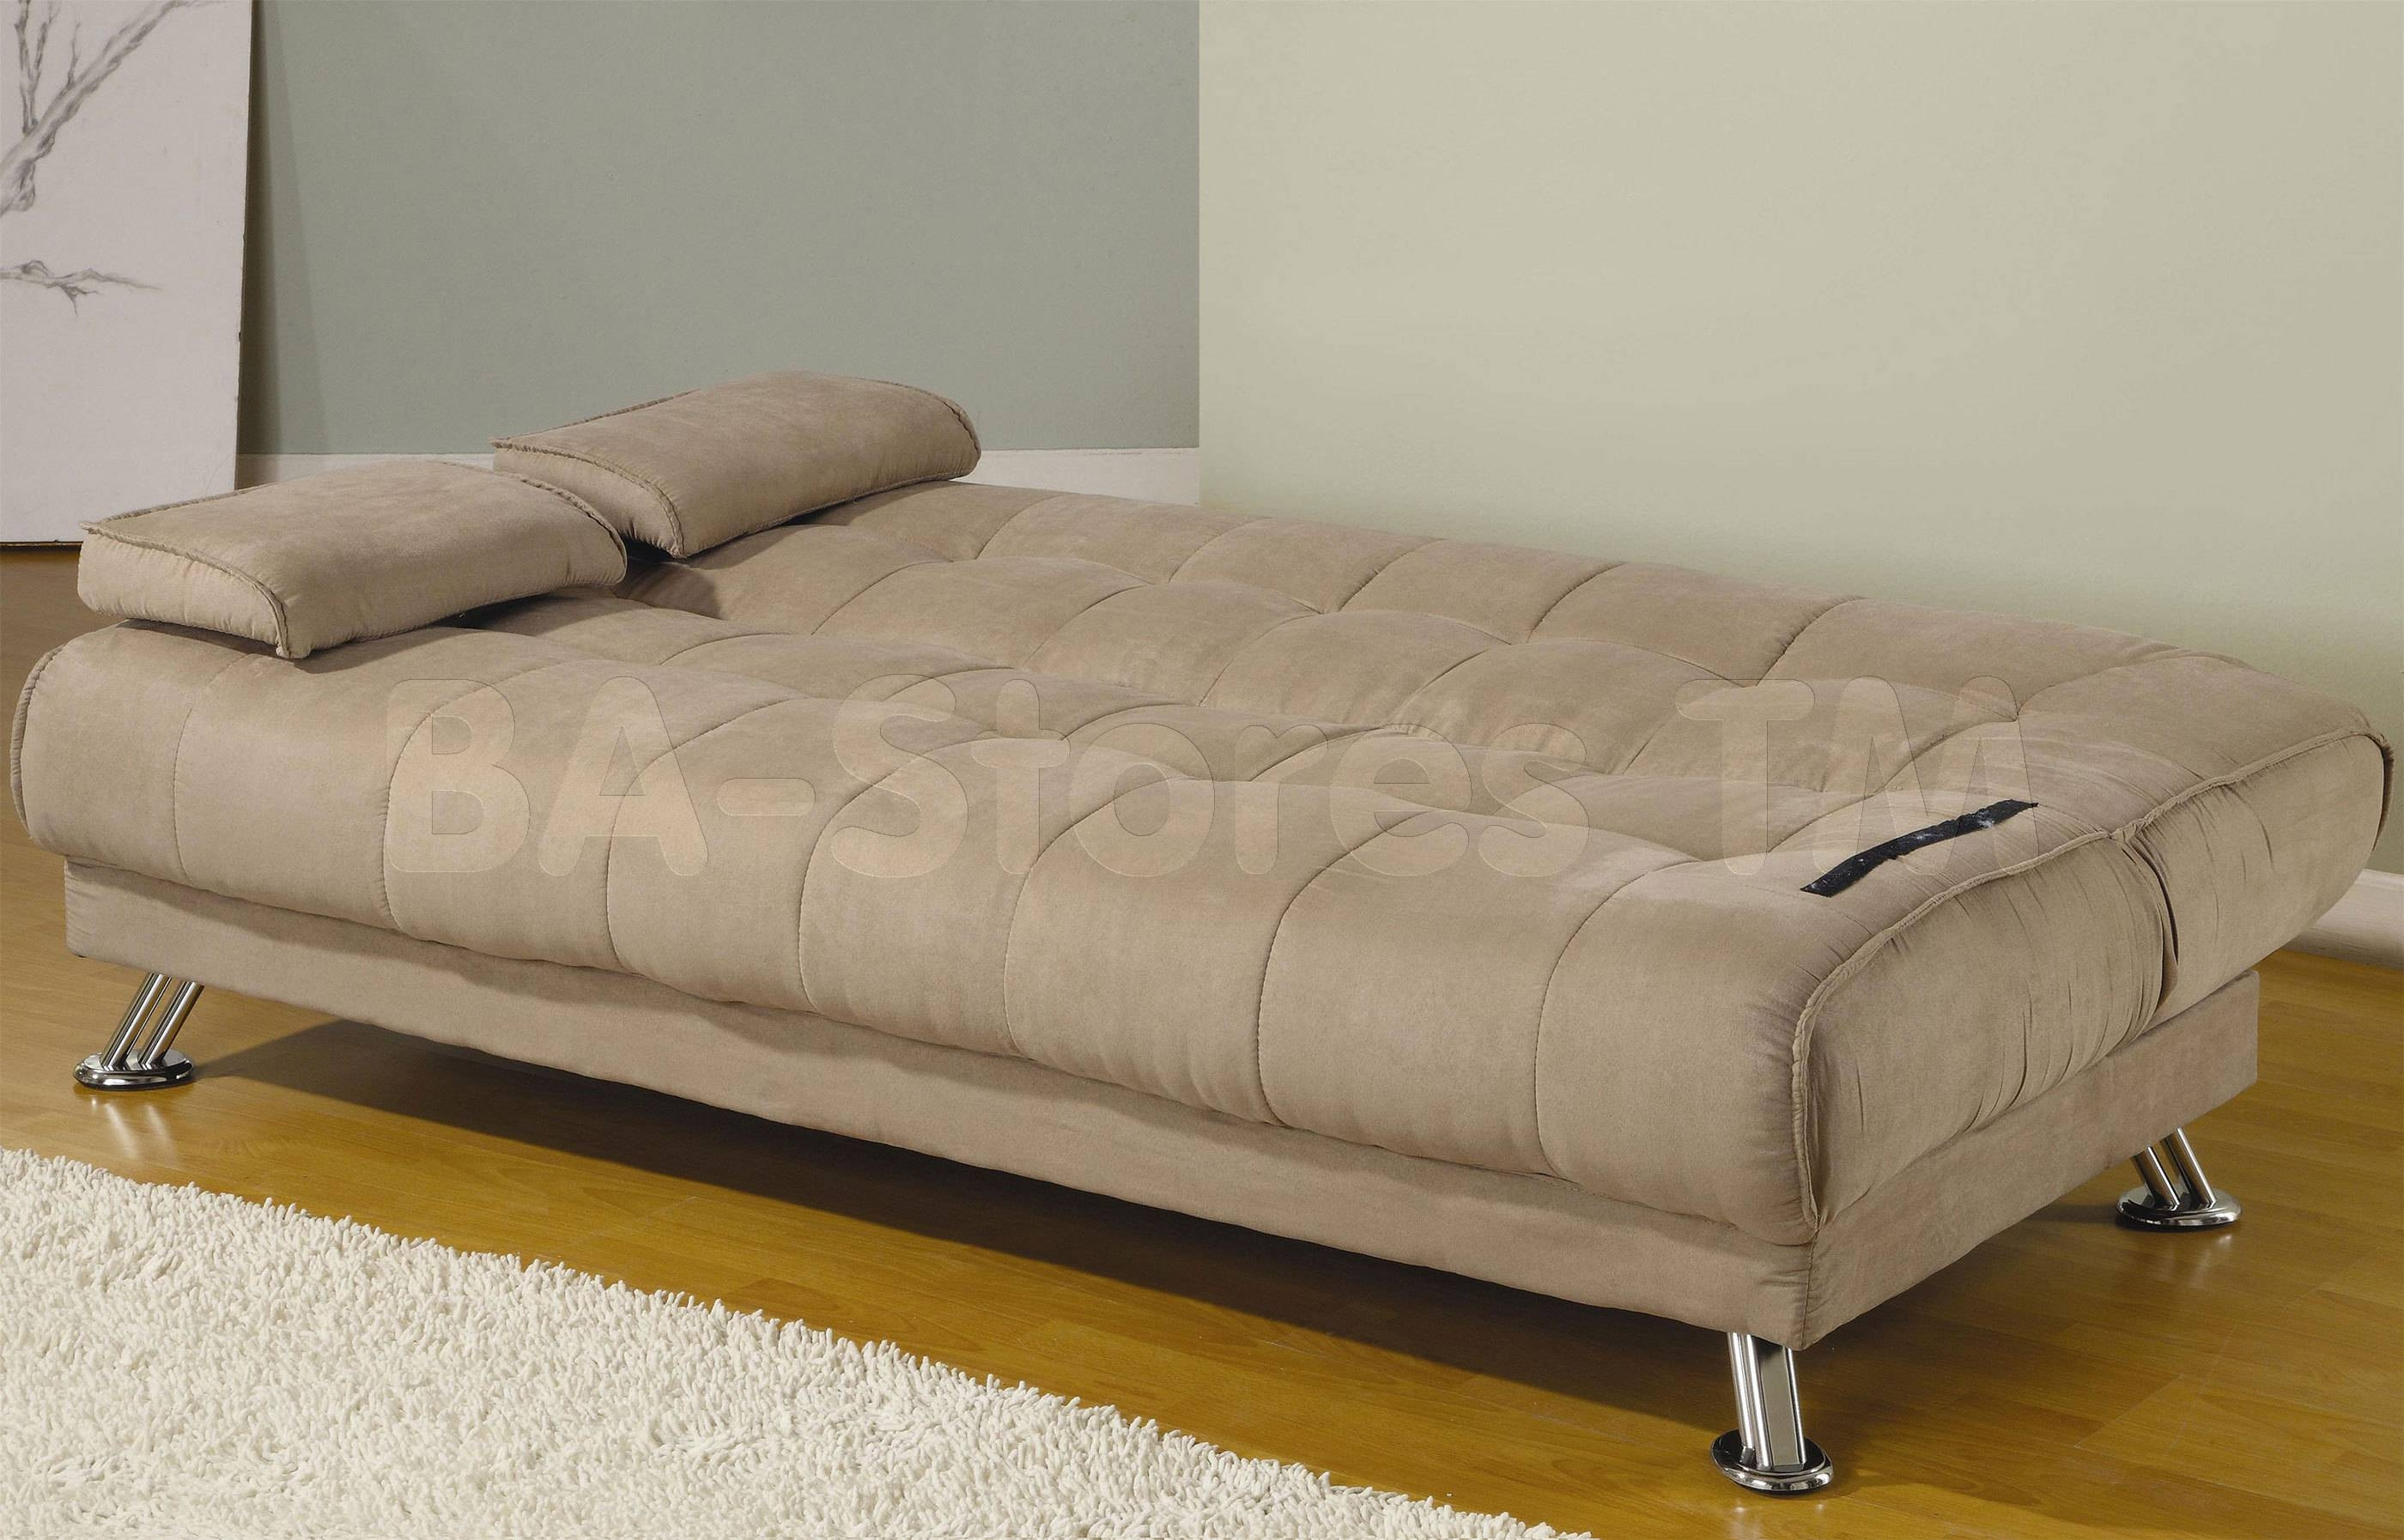 Sofas: Striking Cheap Sofa Sleepers For Small Living Spaces intended for Sofa Sleepers Queen Size (Image 26 of 30)